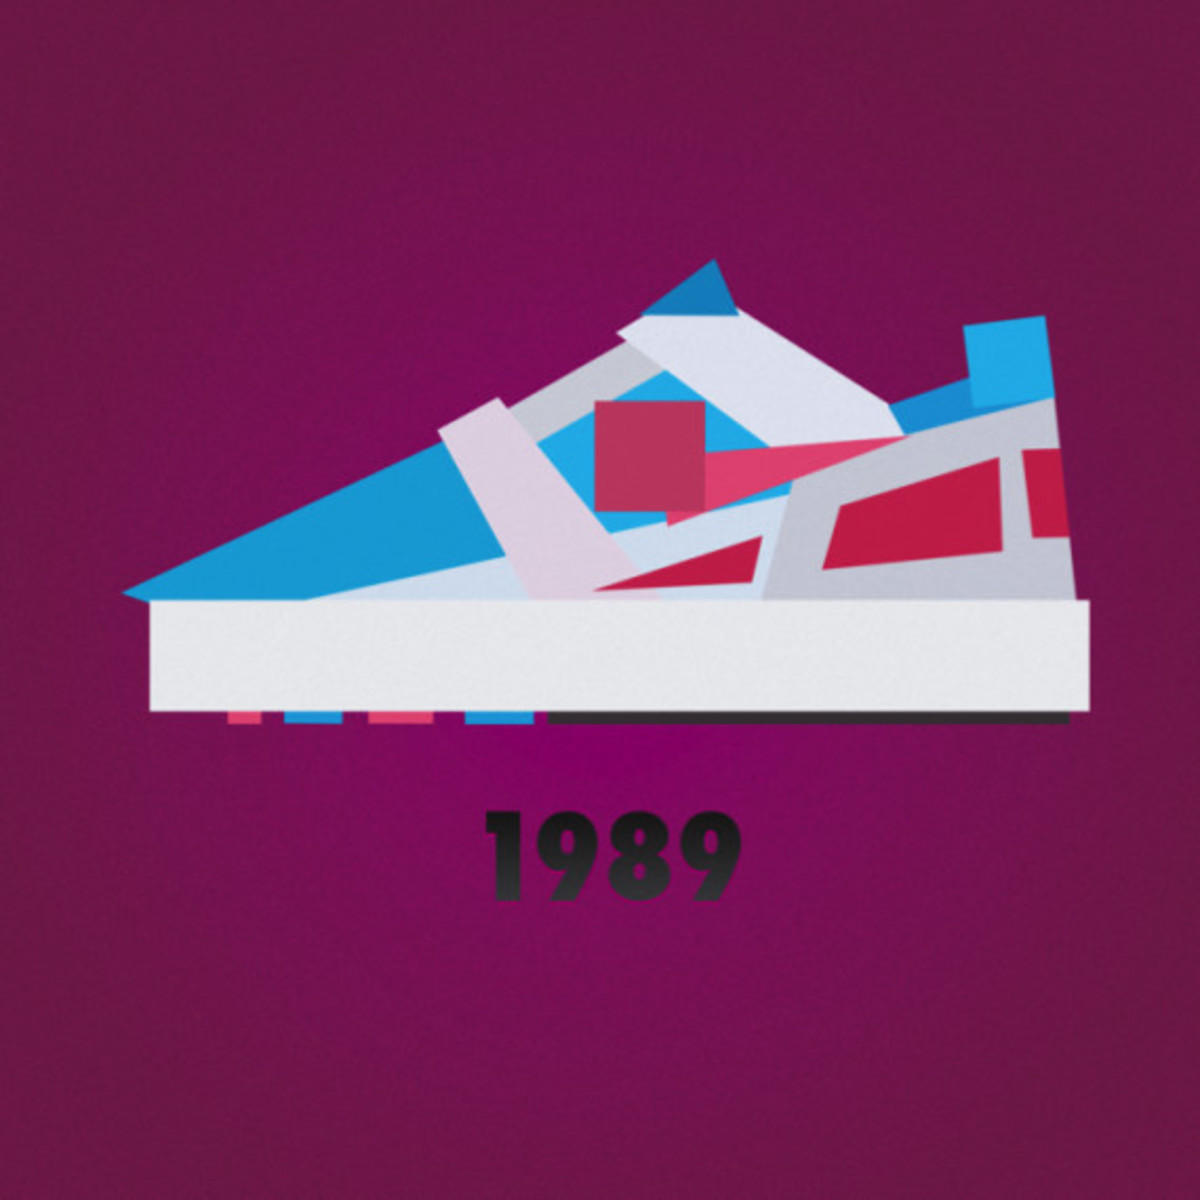 jack-stocker-minimal-sneaker-study-exhibition-02